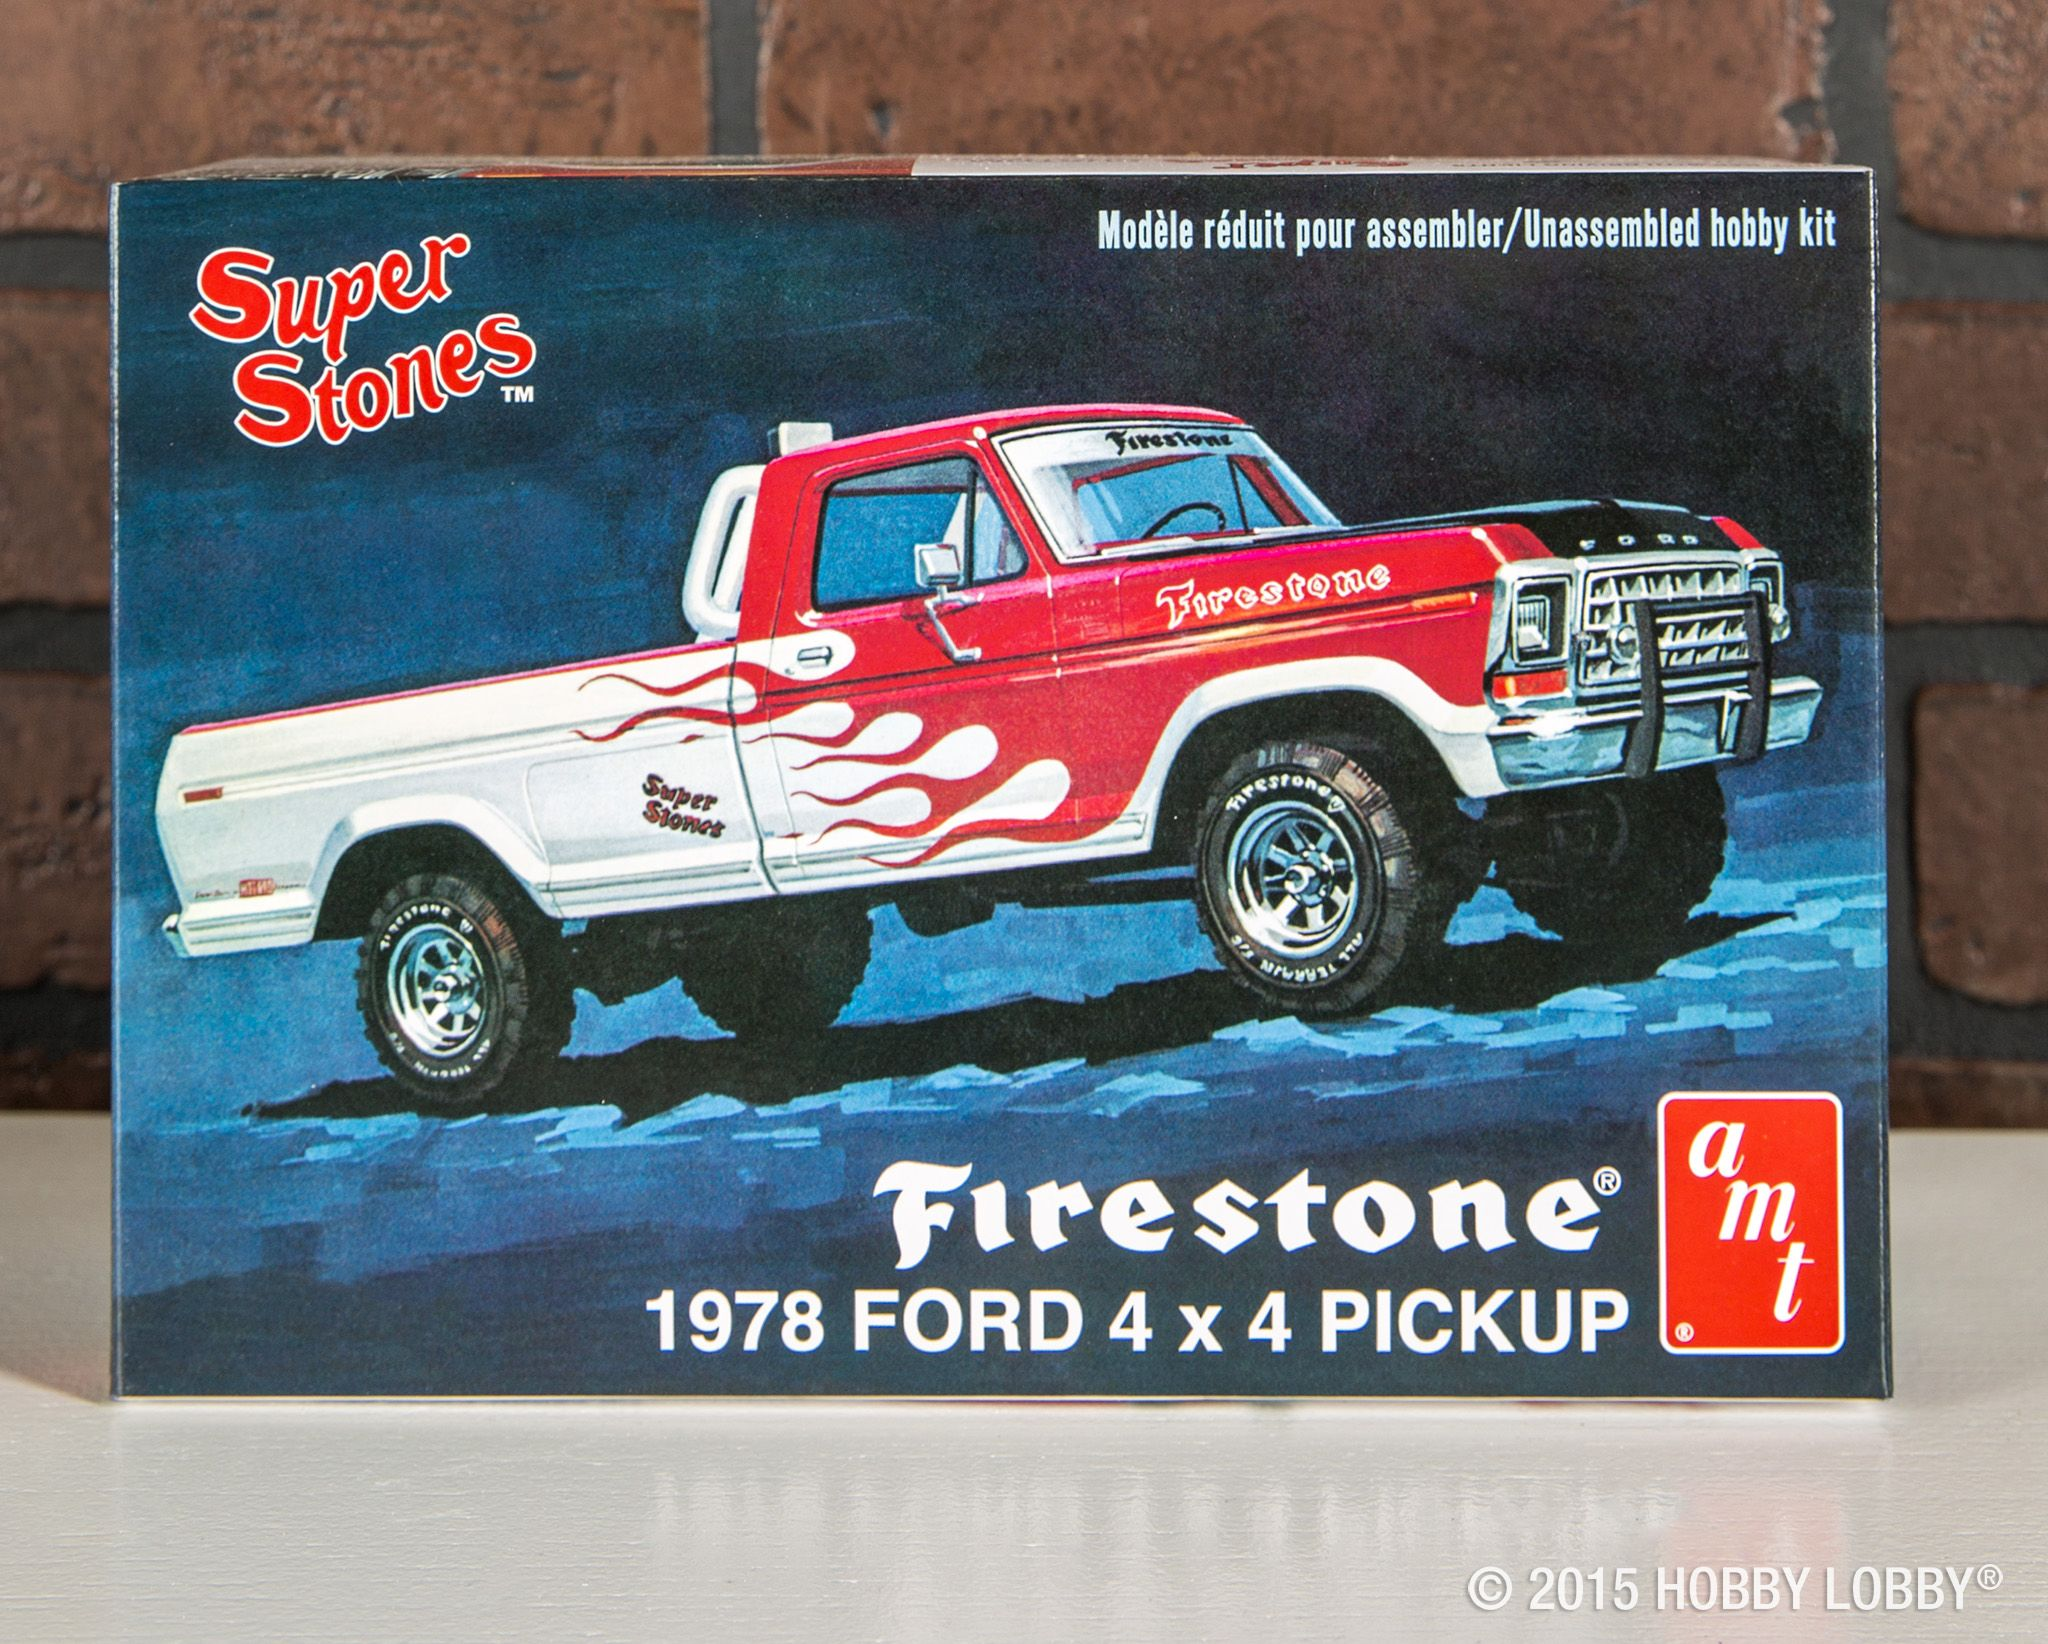 This Newly Re Introduced 1978 Ford Firestone 4x4 Pickup Truck Model Kit Will Provide Hours Of Fun Model Cars Kits Model Truck Kits Ford Pickup